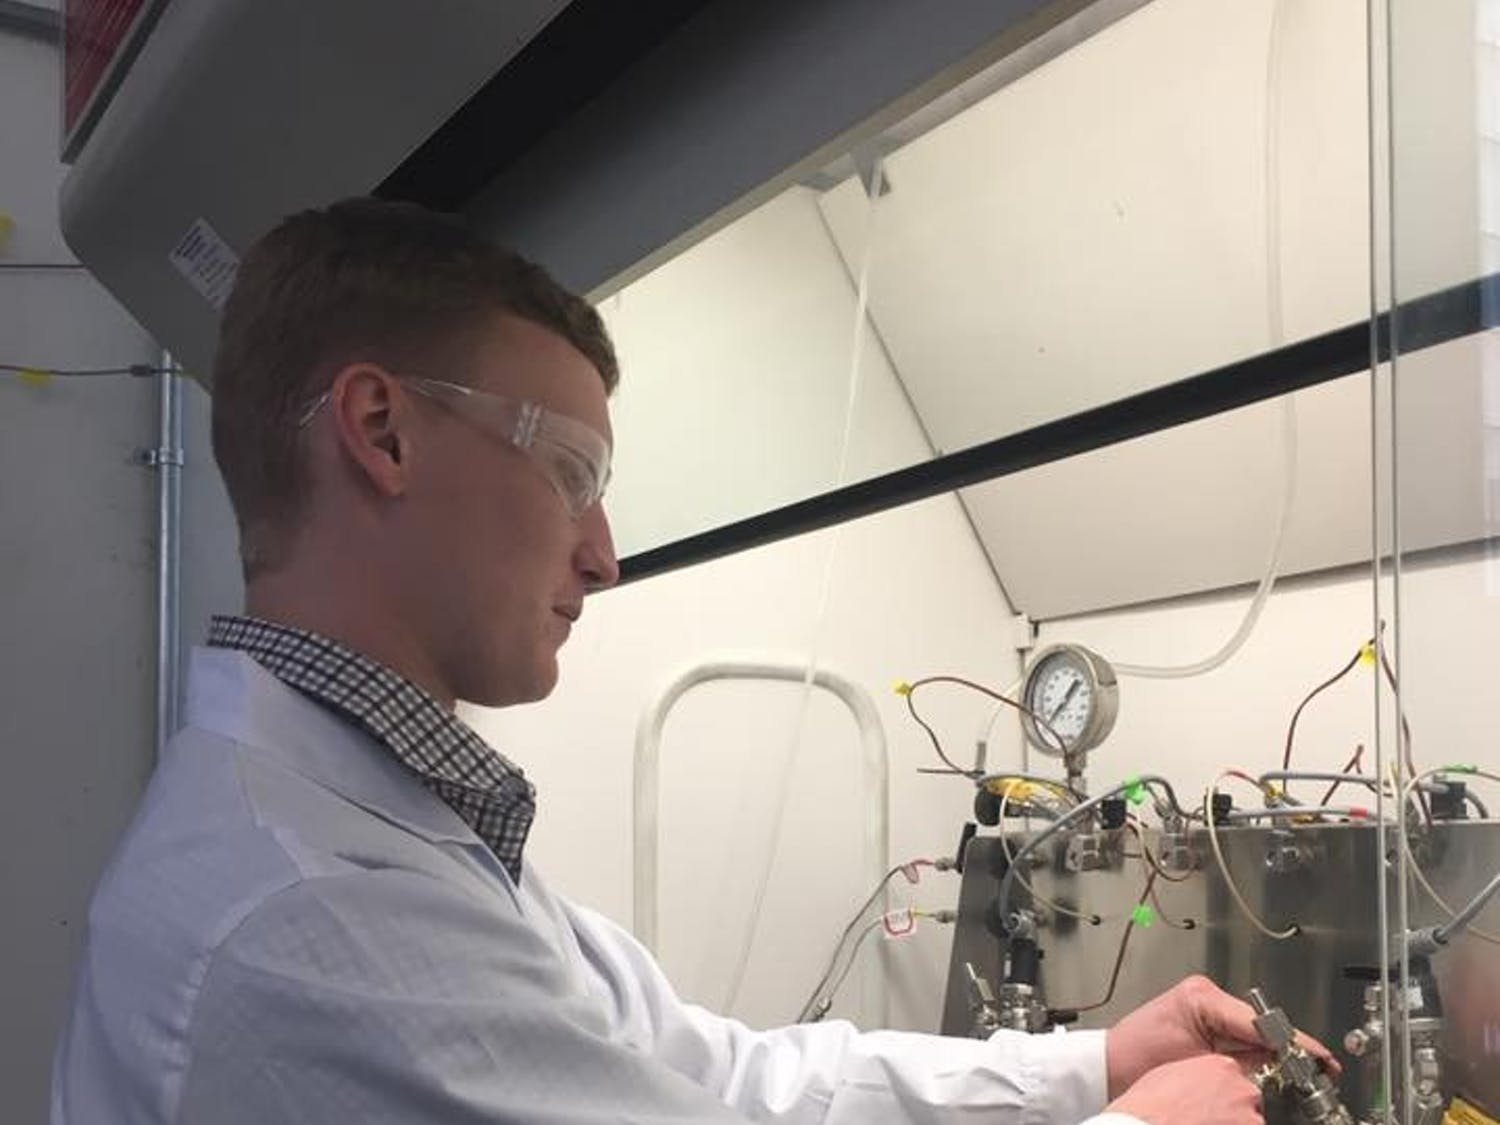 Kevin Barnett works in a lab at the department of energy bioenergy technologies office at UW-Madison to better the procedure for deriving 1,5-pentanediol, a possible substitute for a petroleum-like chemical.